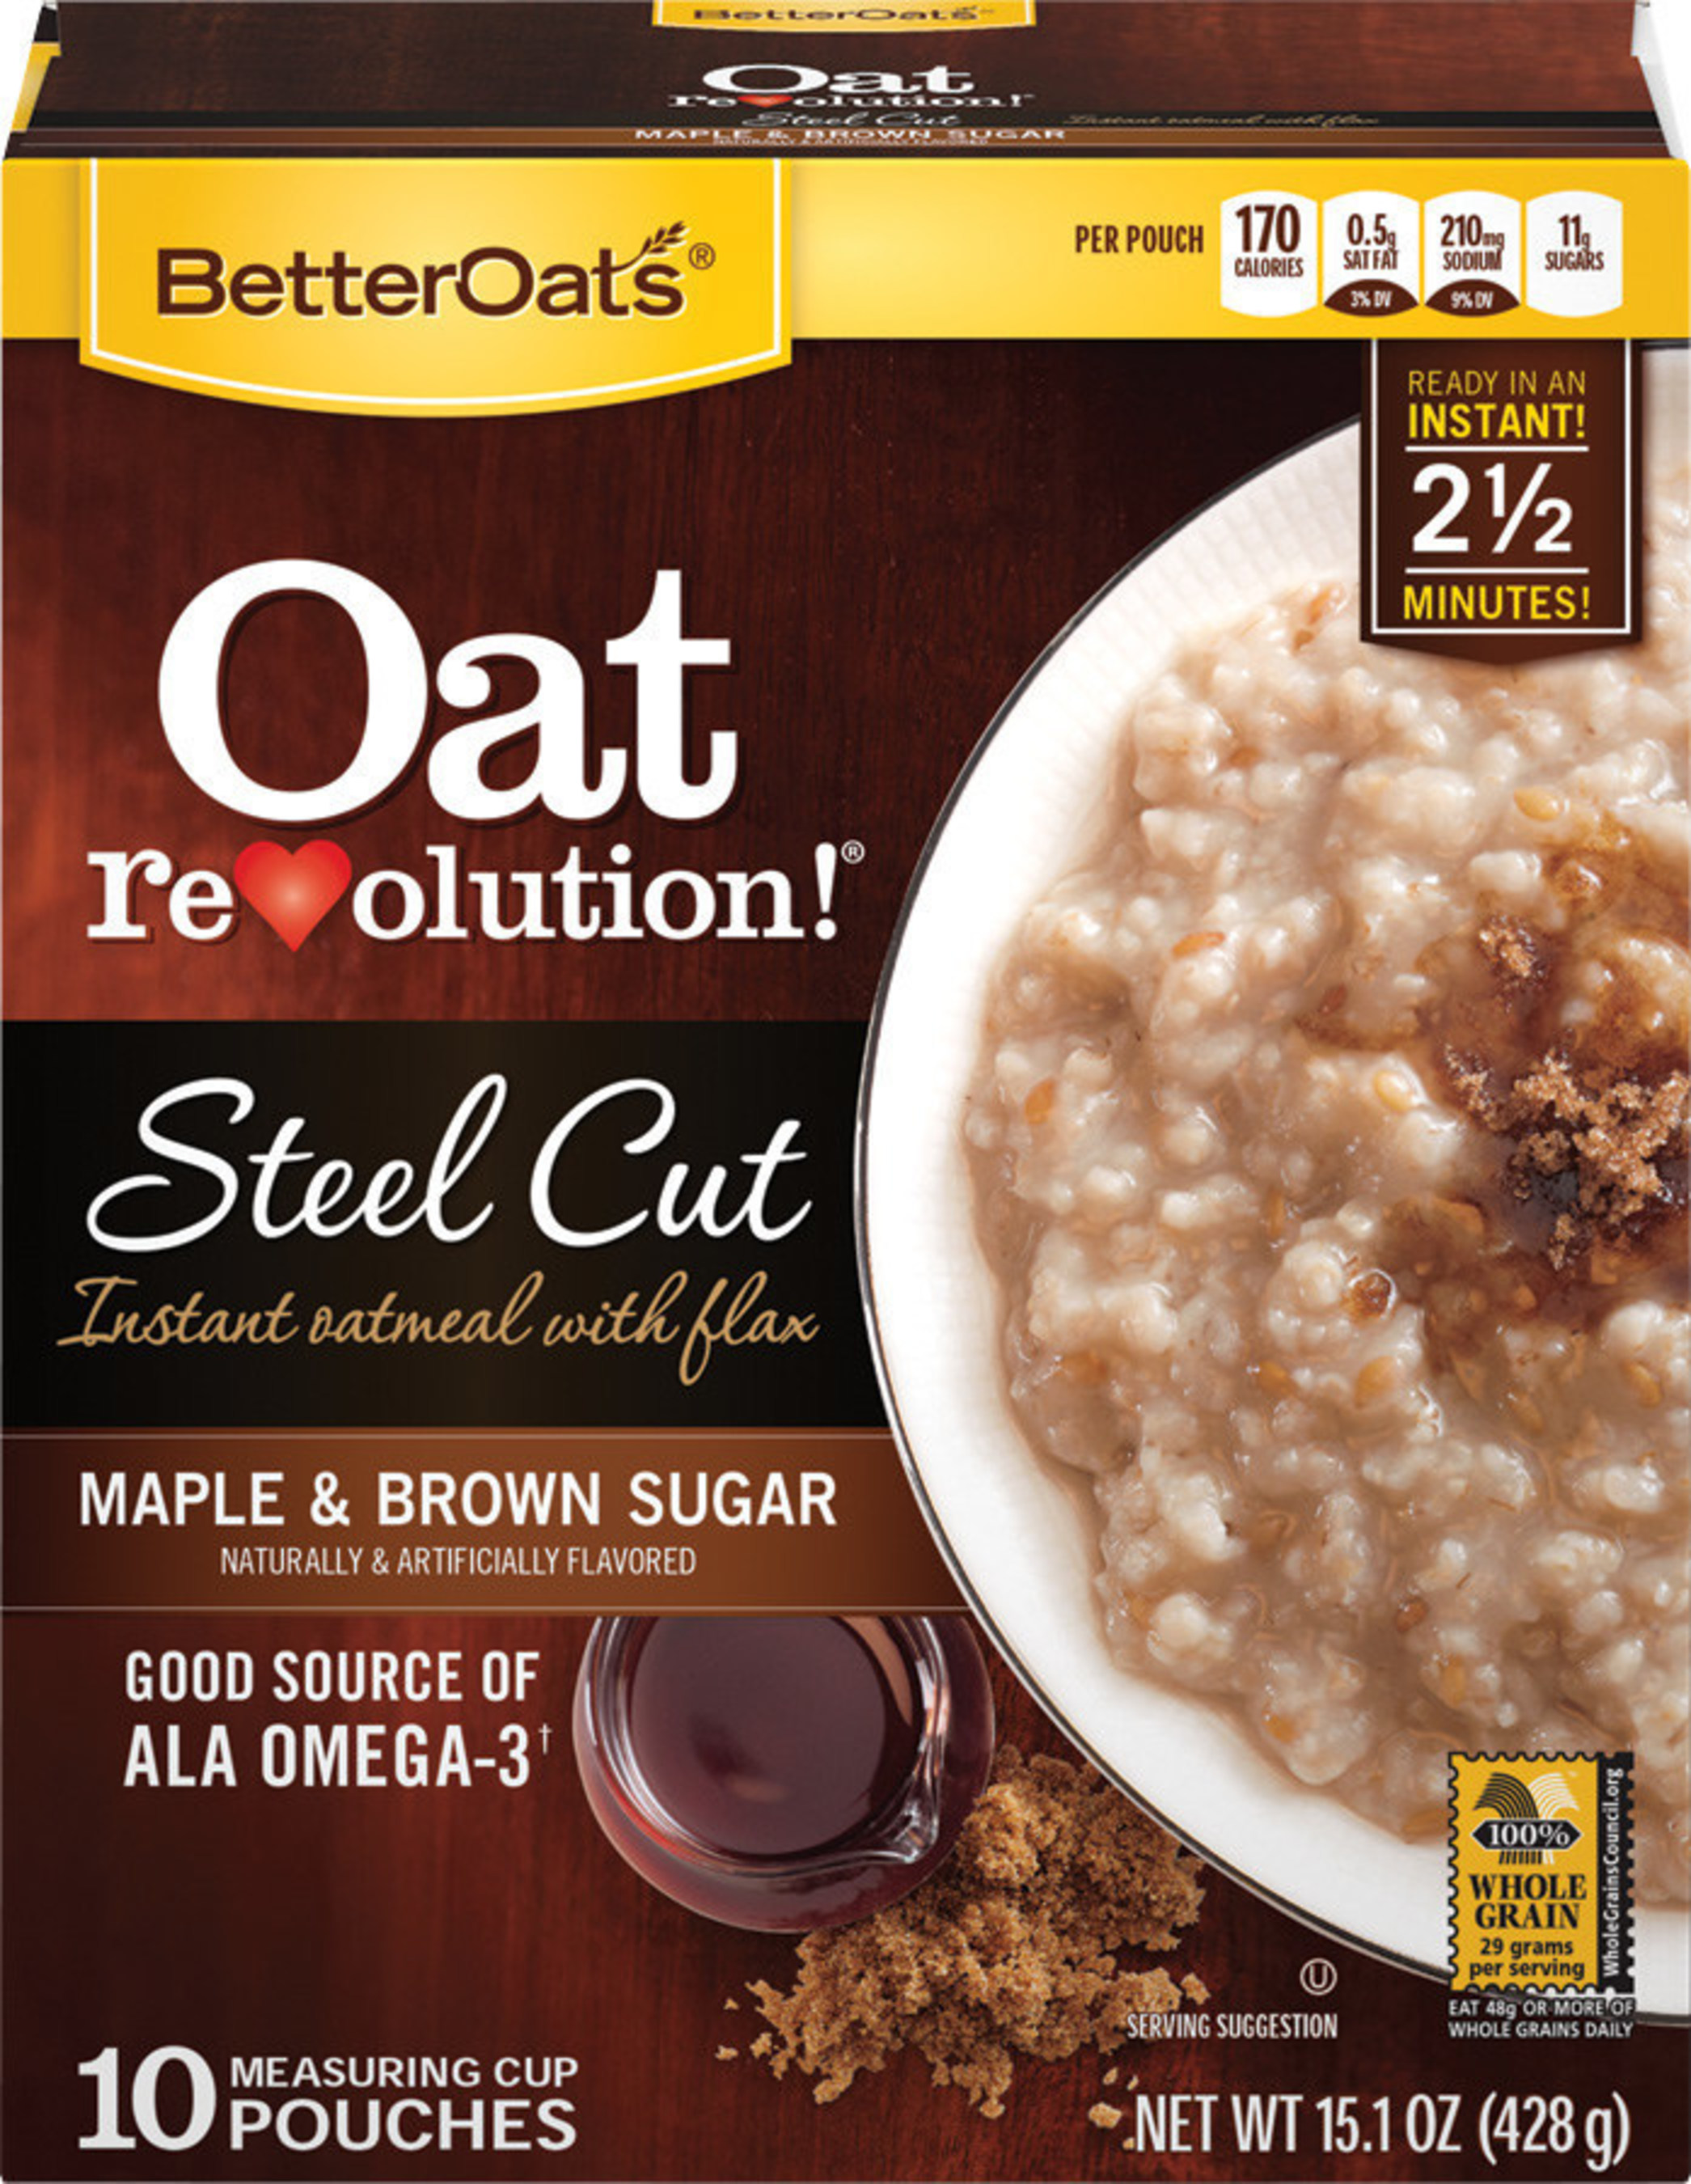 MOM Brands(R) Better Oats(R) Oat Revolution(R) Steel Cut Oatmeal was recently named a winner of Progressive Grocer's 2014 Editors' Picks Awards, the grocery industry's most esteemed new product recognition program. The product contains flaxseed, carries the 100 percent Whole Grain Stamp from the Whole Grains Council, and is a good source of fiber and ALA-Omega 3. Its premium steel cut oats are sliced thick to preserve their natural consistency, adding to the product's hearty taste and texture. (PRNewsFoto/MOM Brands)